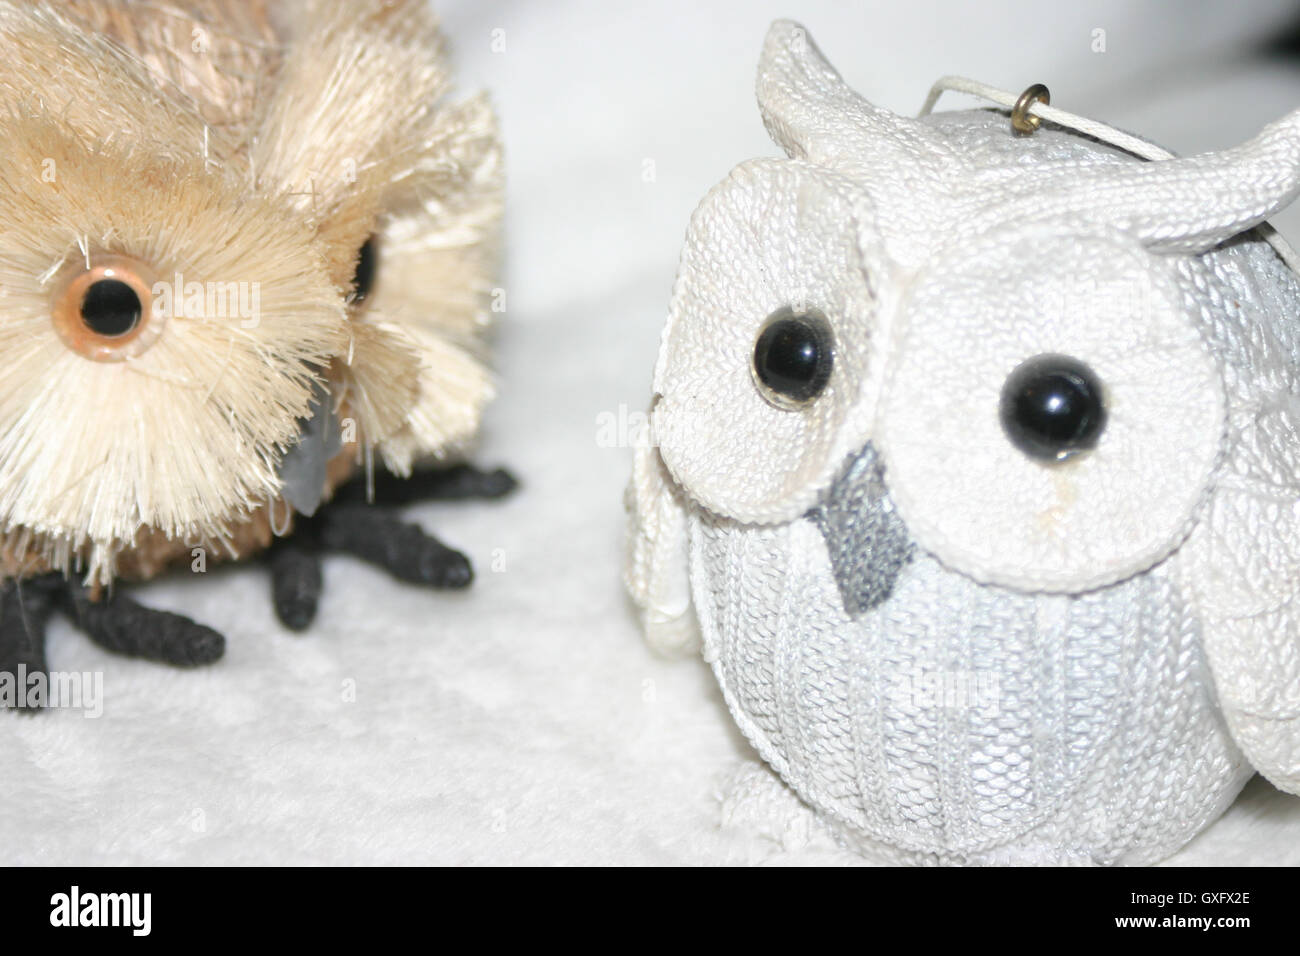 Artificial Owls - Stock Image